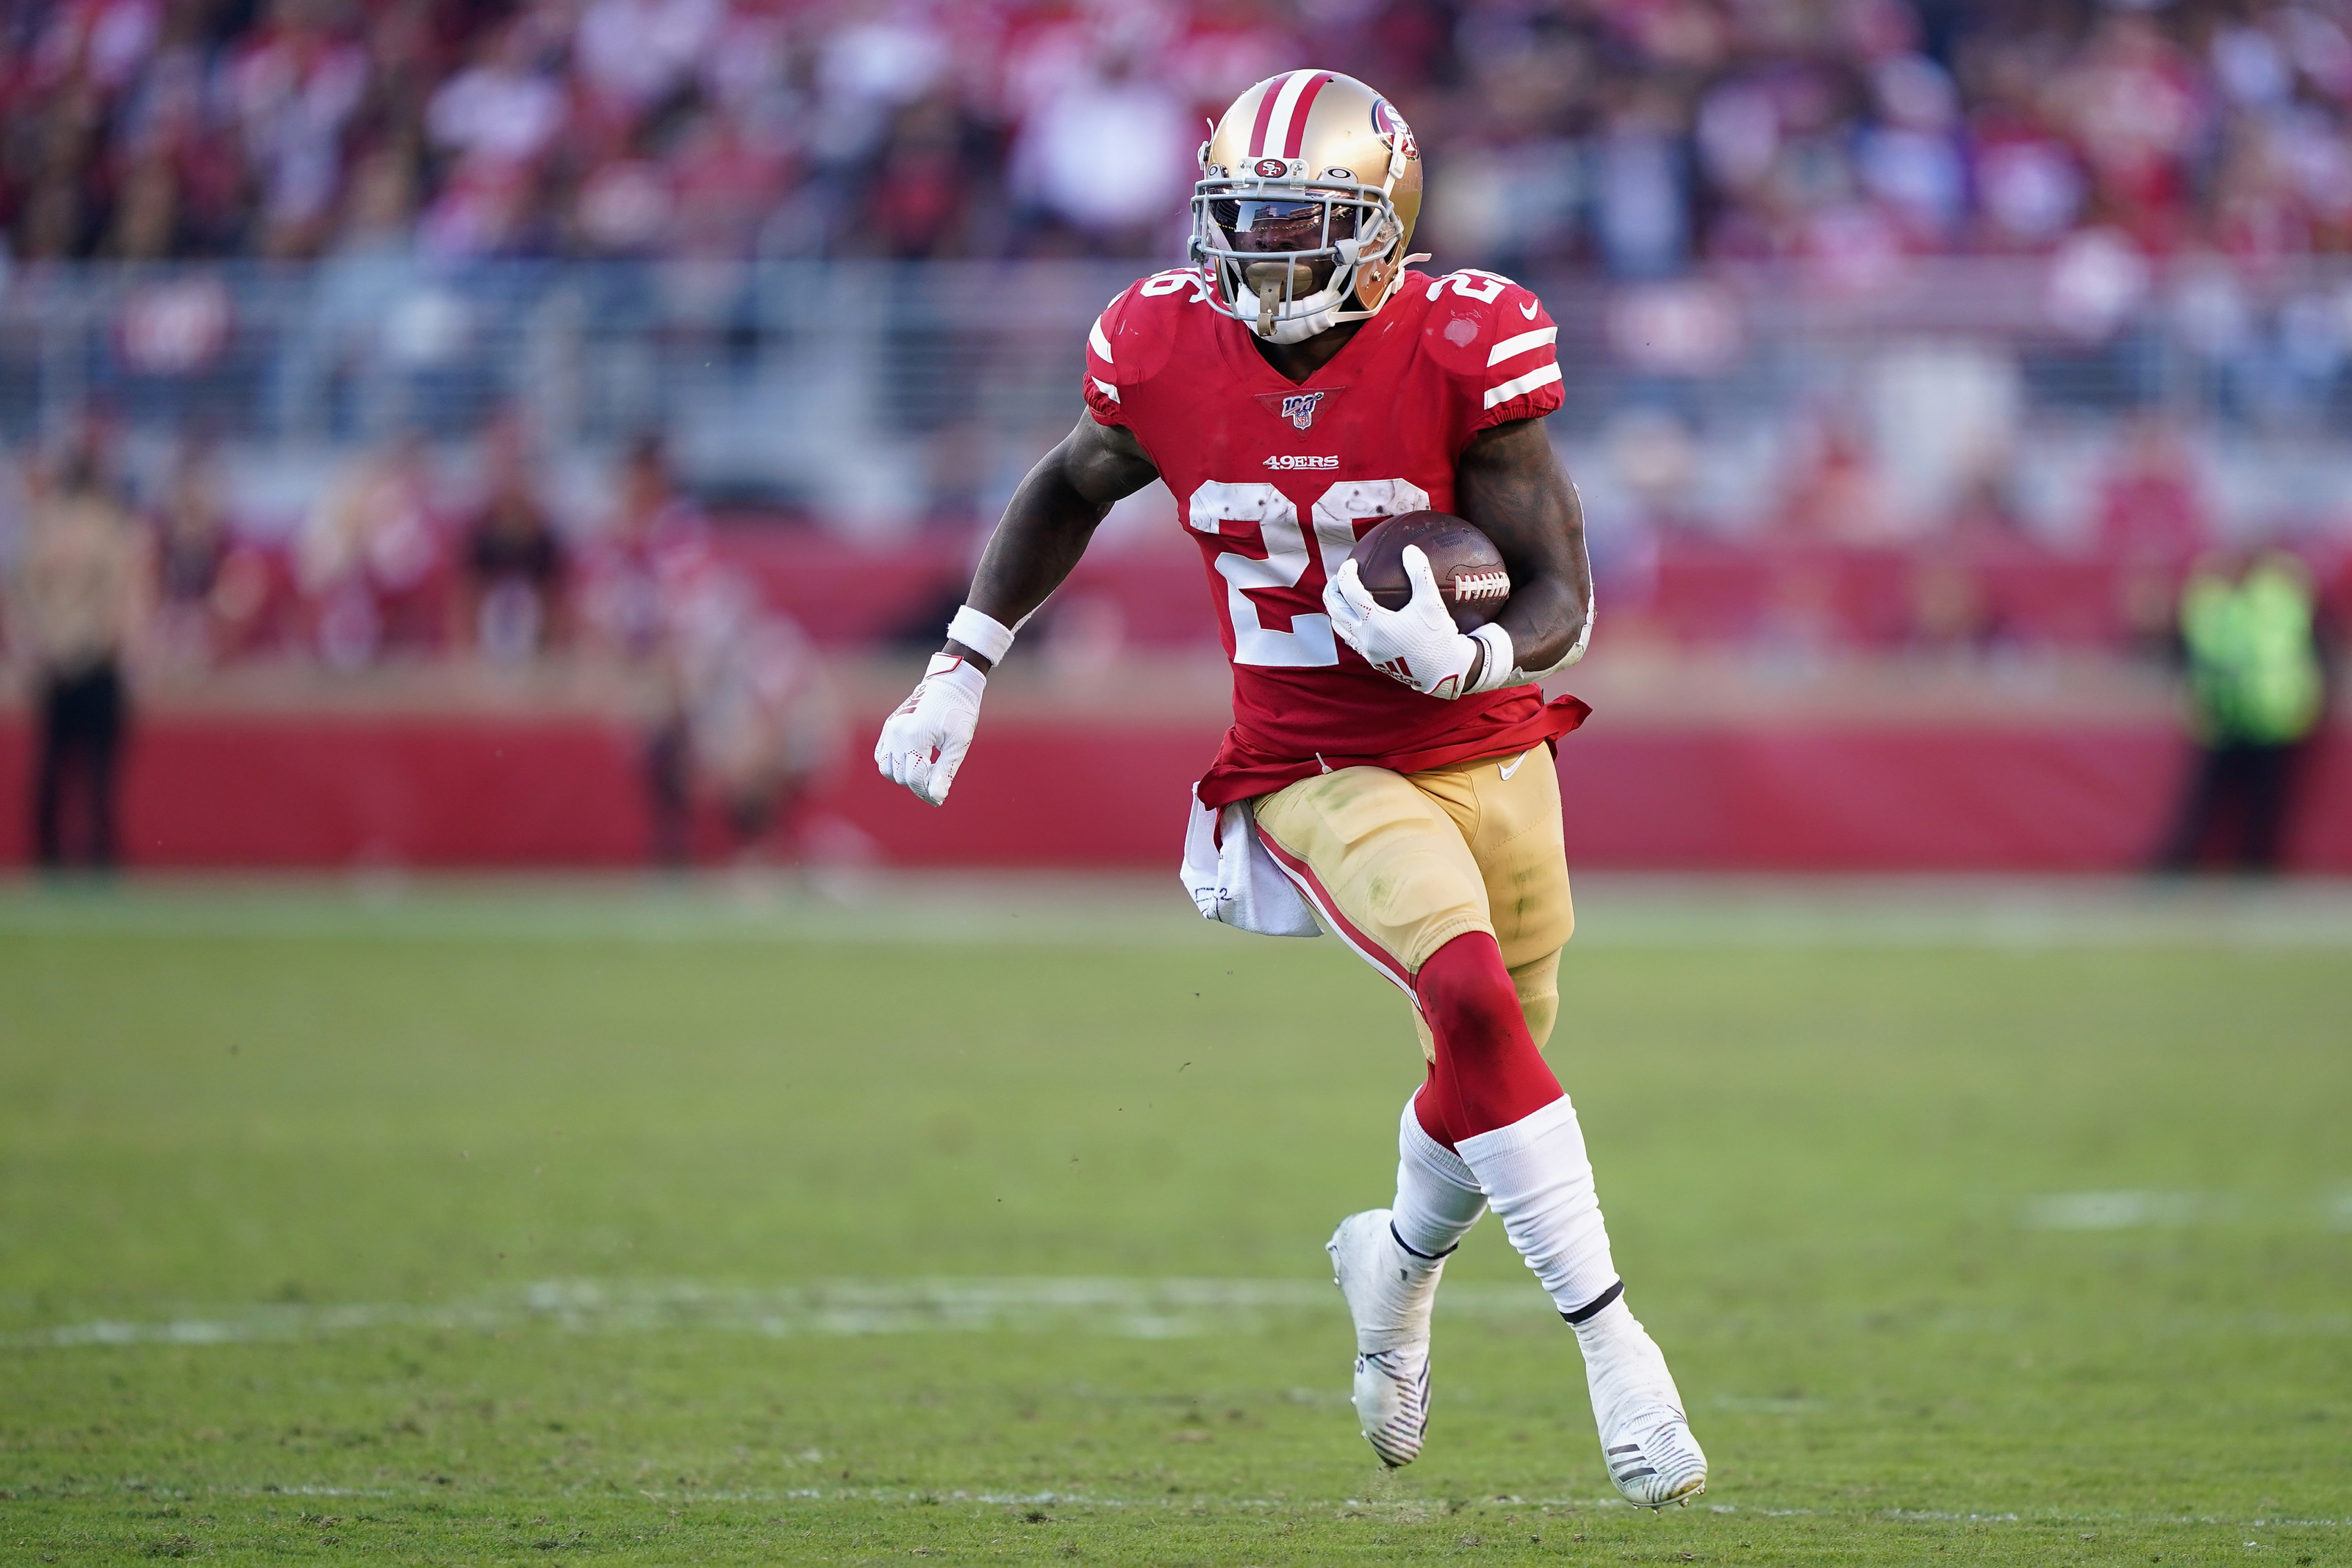 49ers running back situation in 2020 is more complicated than it seems